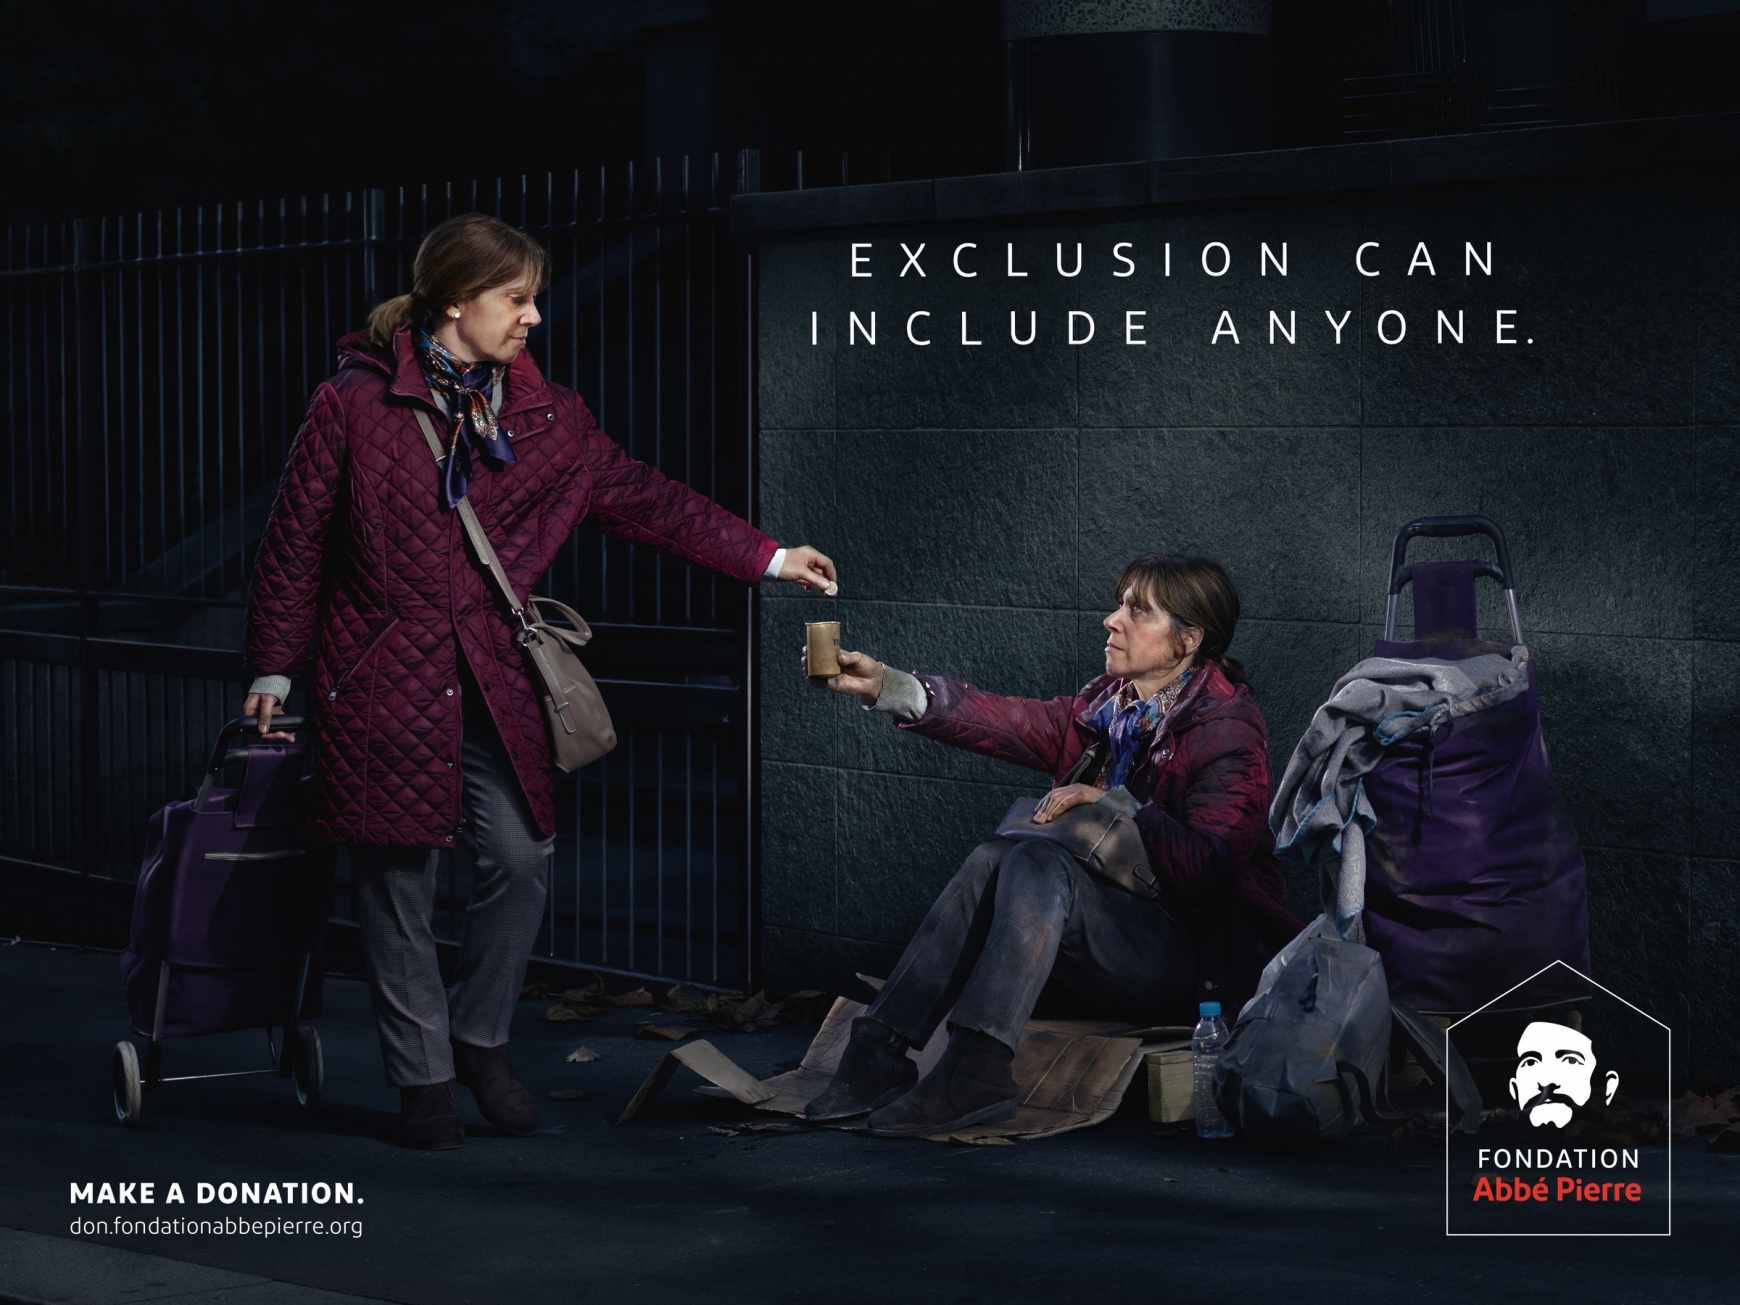 Fondation Abbé Pierre Outdoor Ad - Exclusion can include anyone, 2